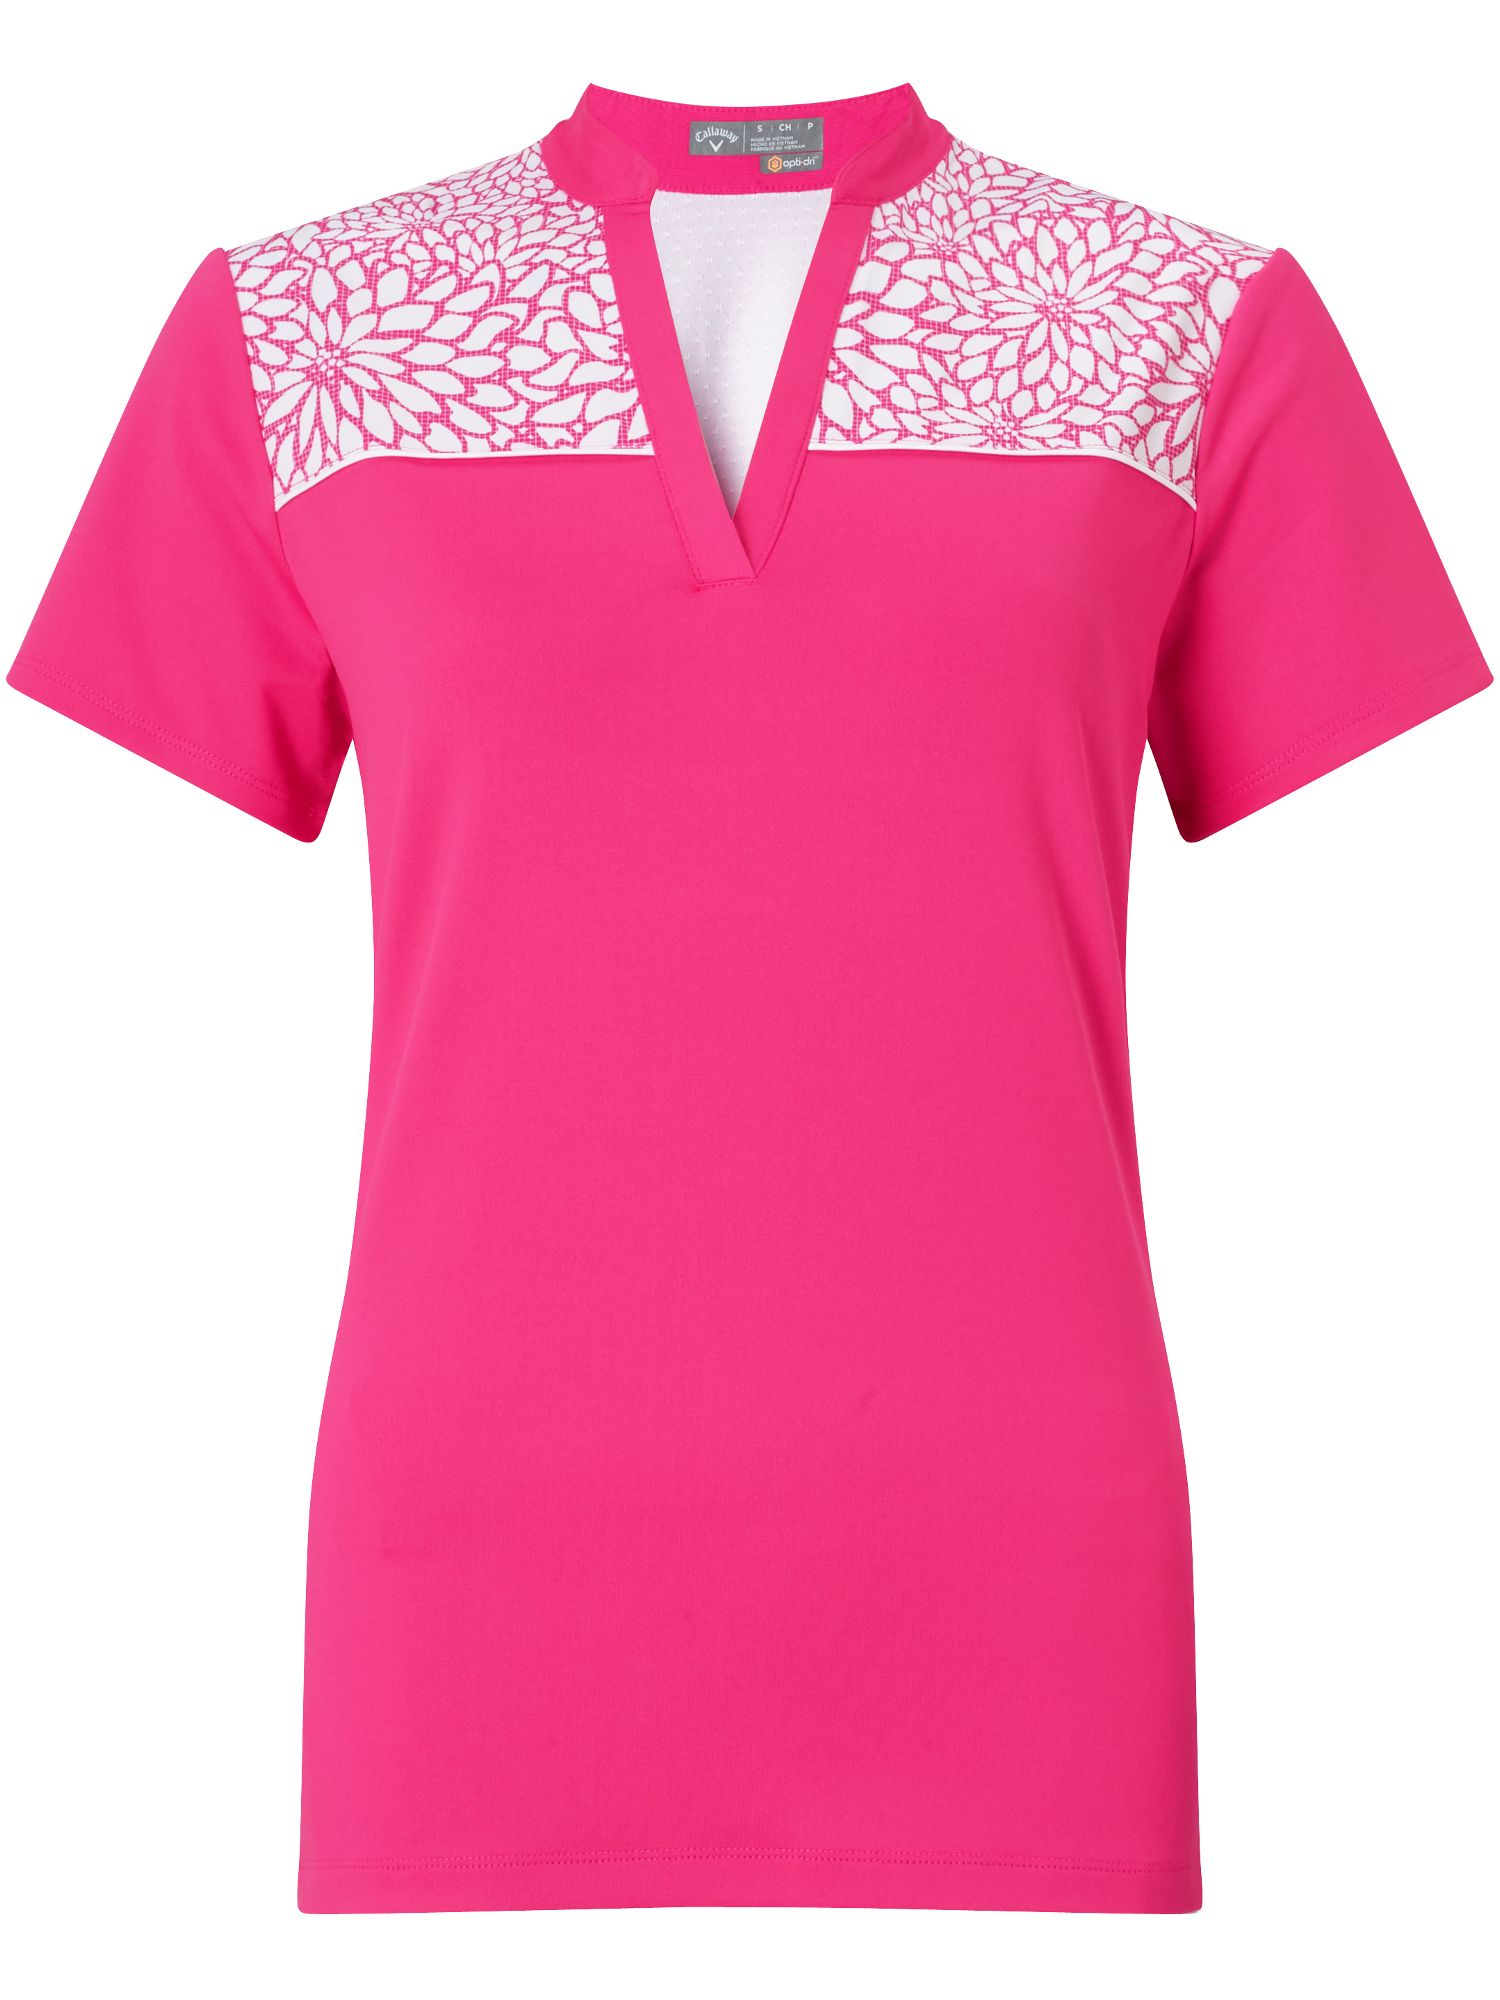 Callaway Floral Polo, Pink